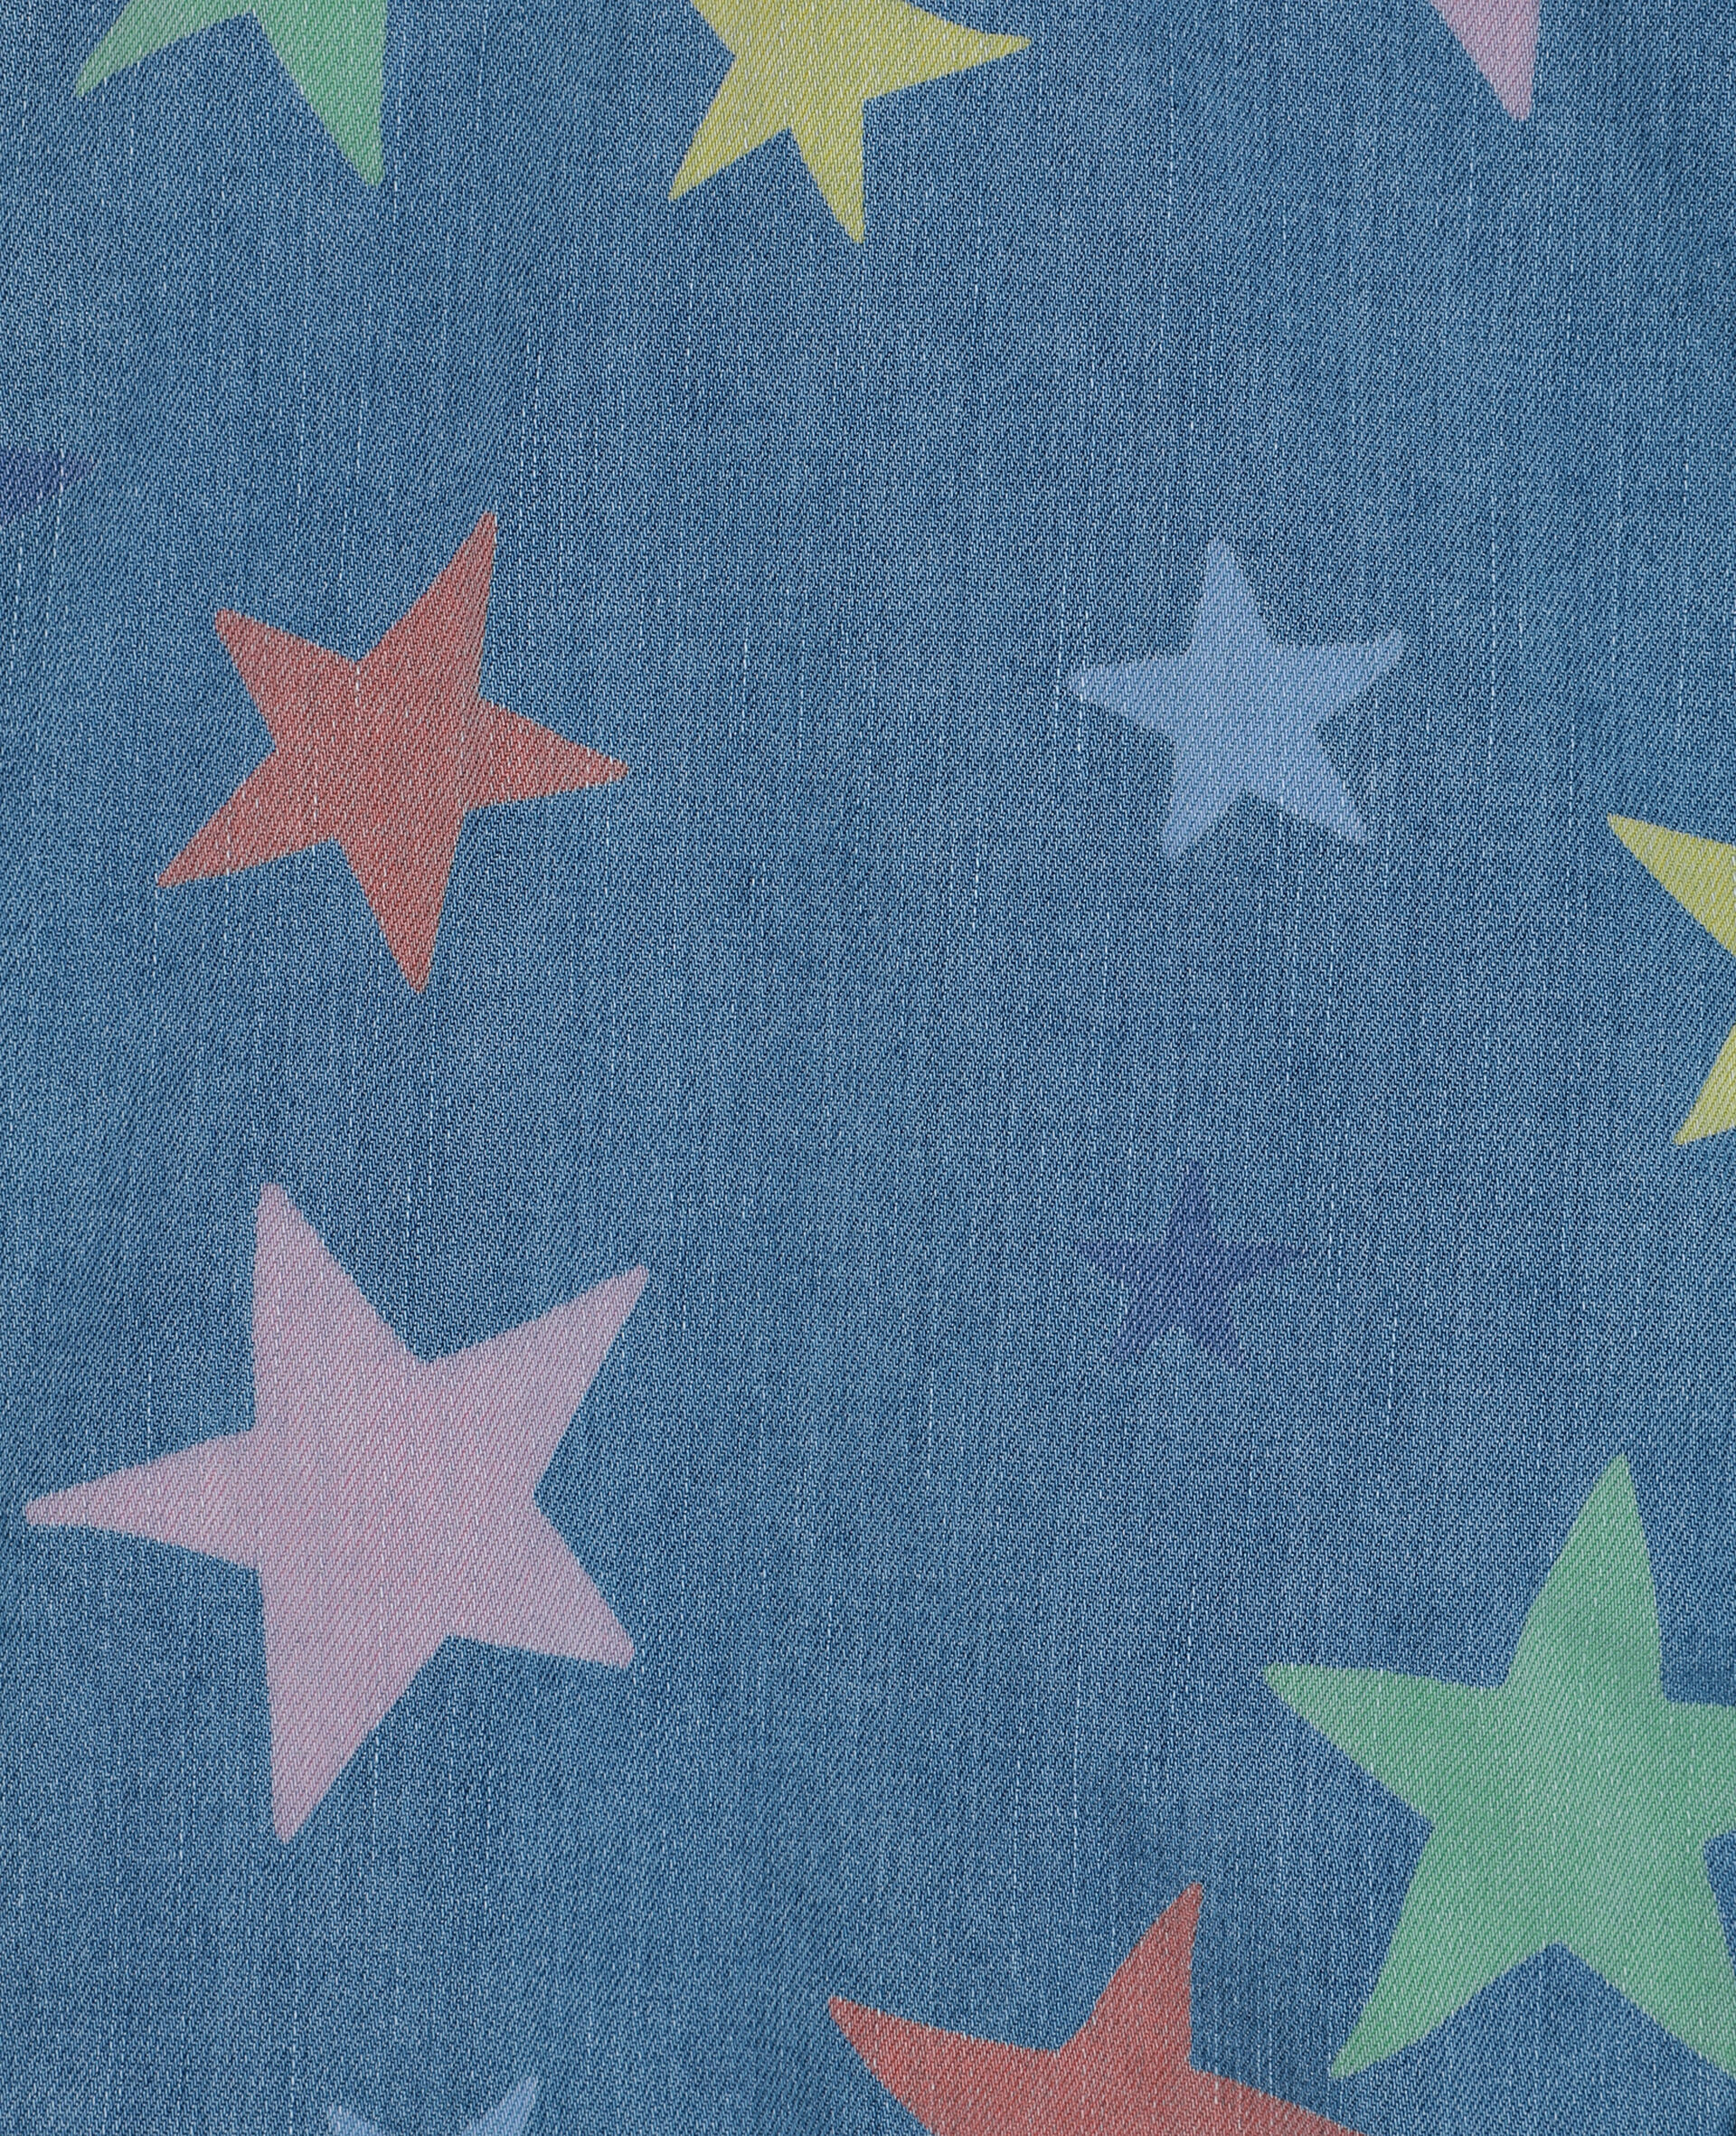 Multicolour Stars Denim Jacket -Multicolour-large image number 2